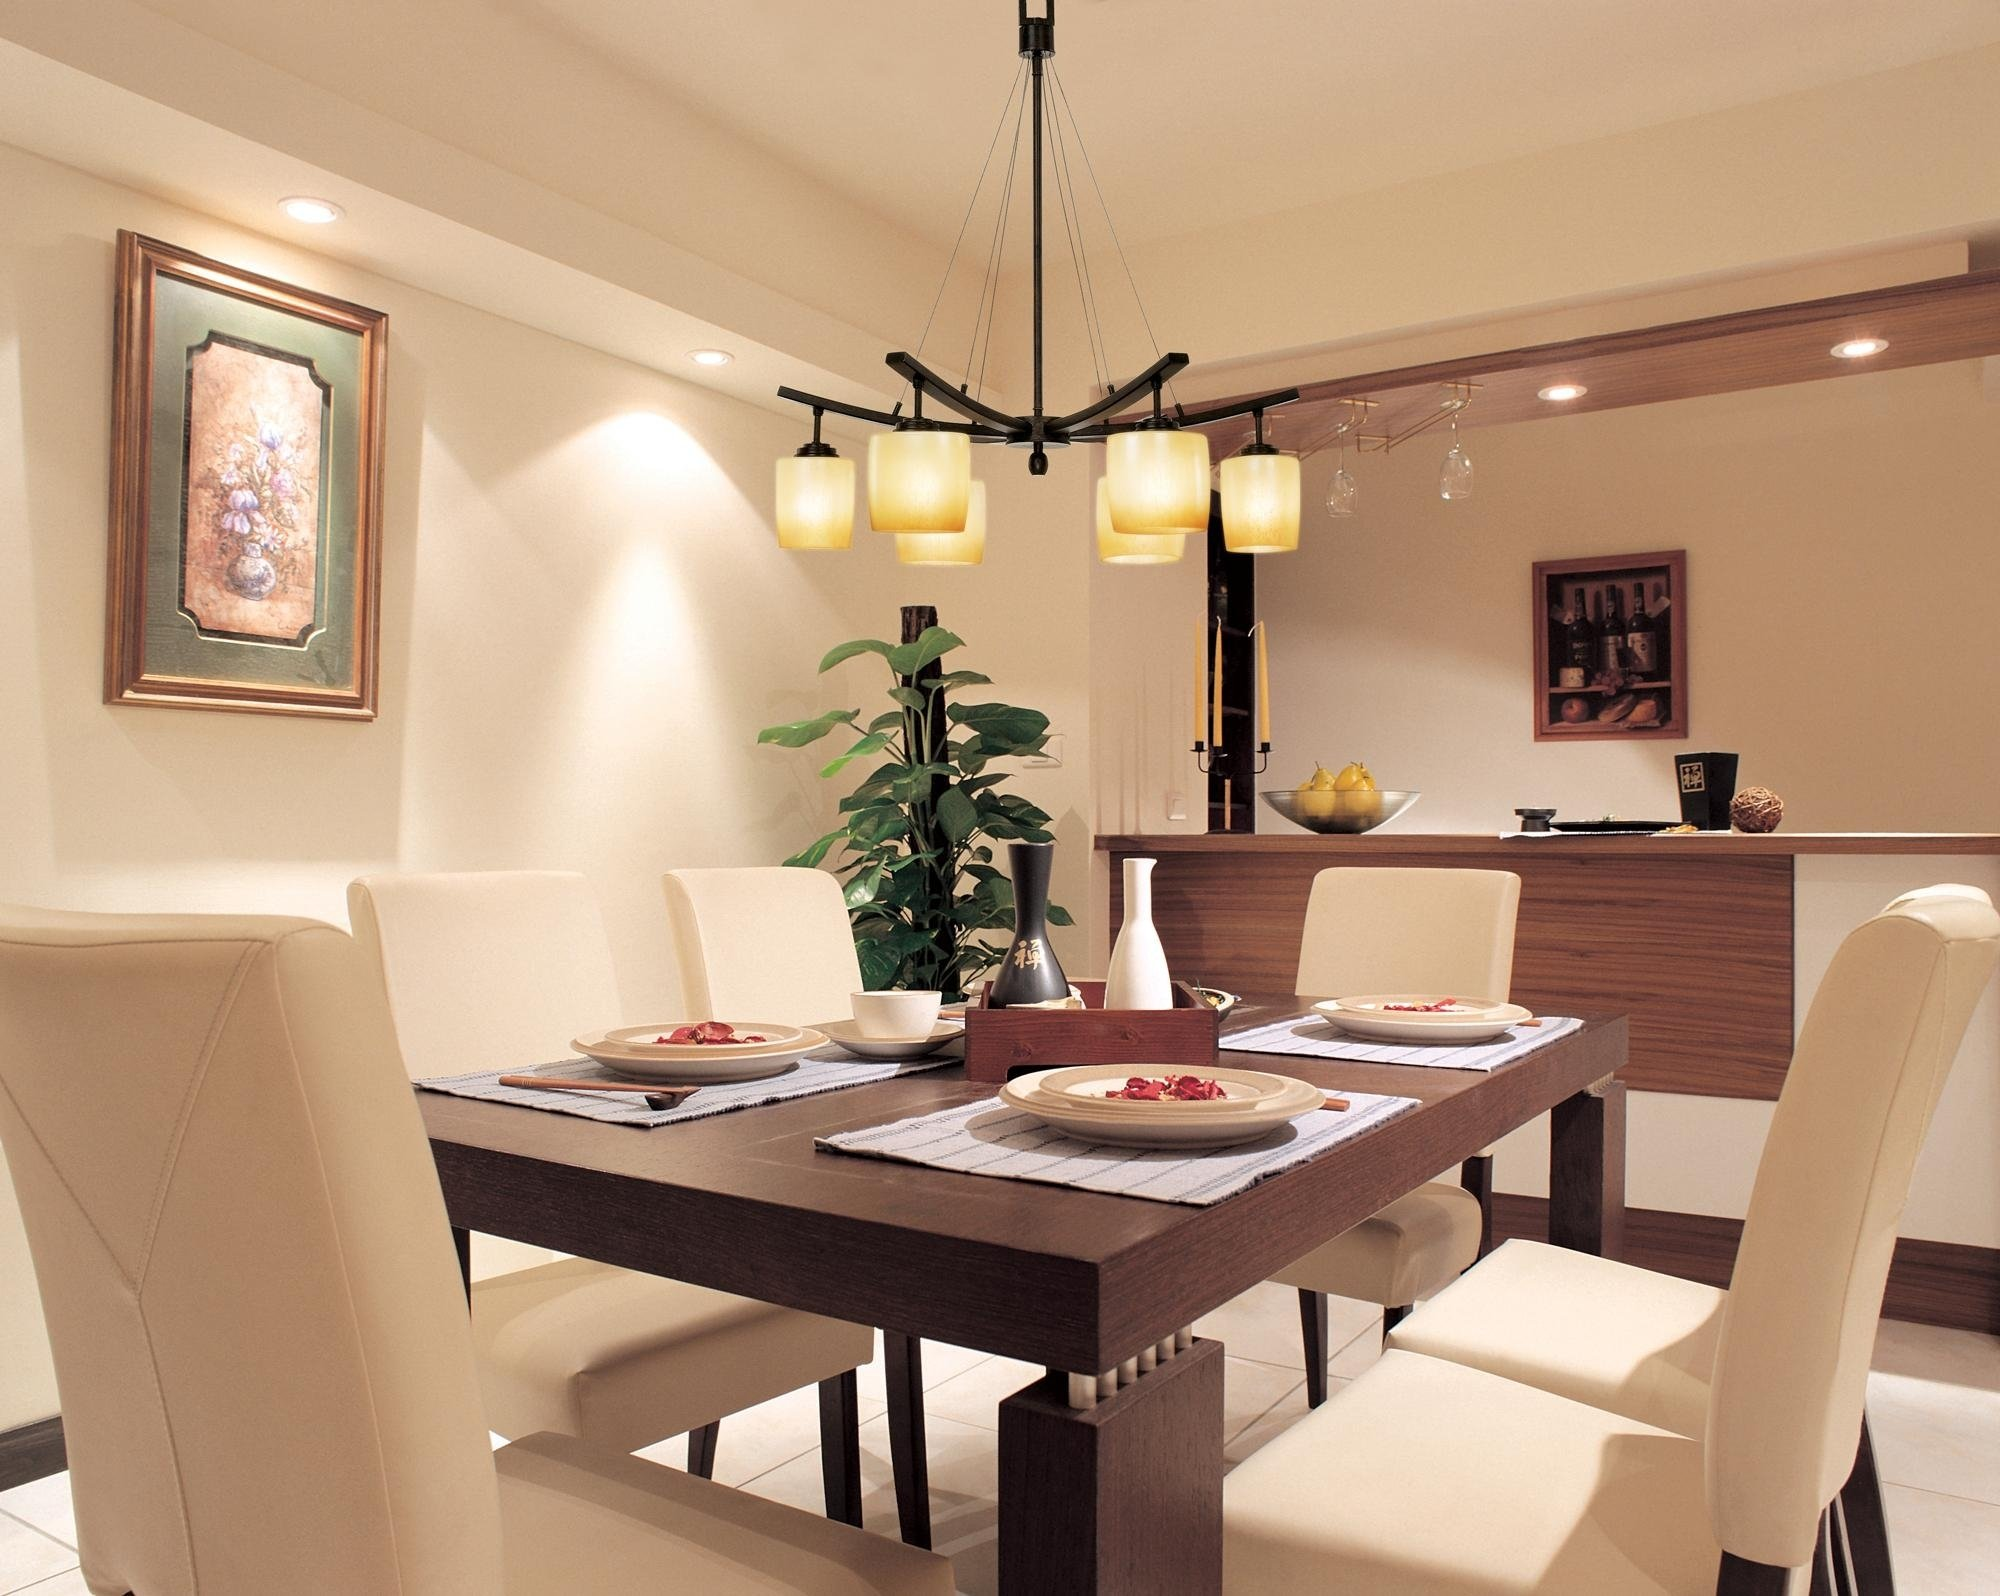 10 Perfect Dining Room Light Fixture Ideas affordable modern lighting ceiling lamps ideas dining room ikea